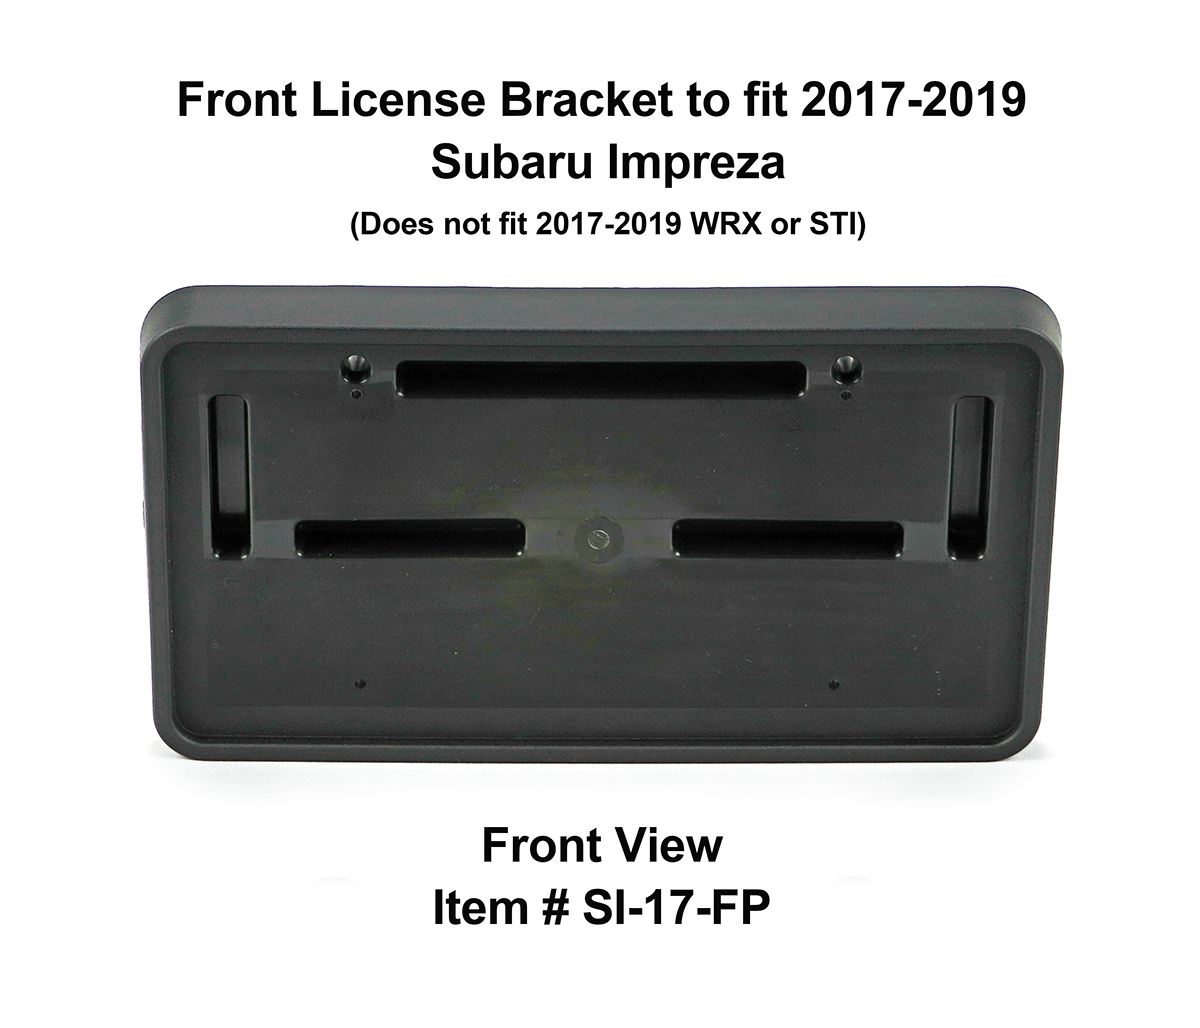 Front View of Front License Bracket SI-17-FP to fit 2017-2018 Subaru Impreza (excluding WRX & STI models) custom designed and manufactured by C&C CarWorx